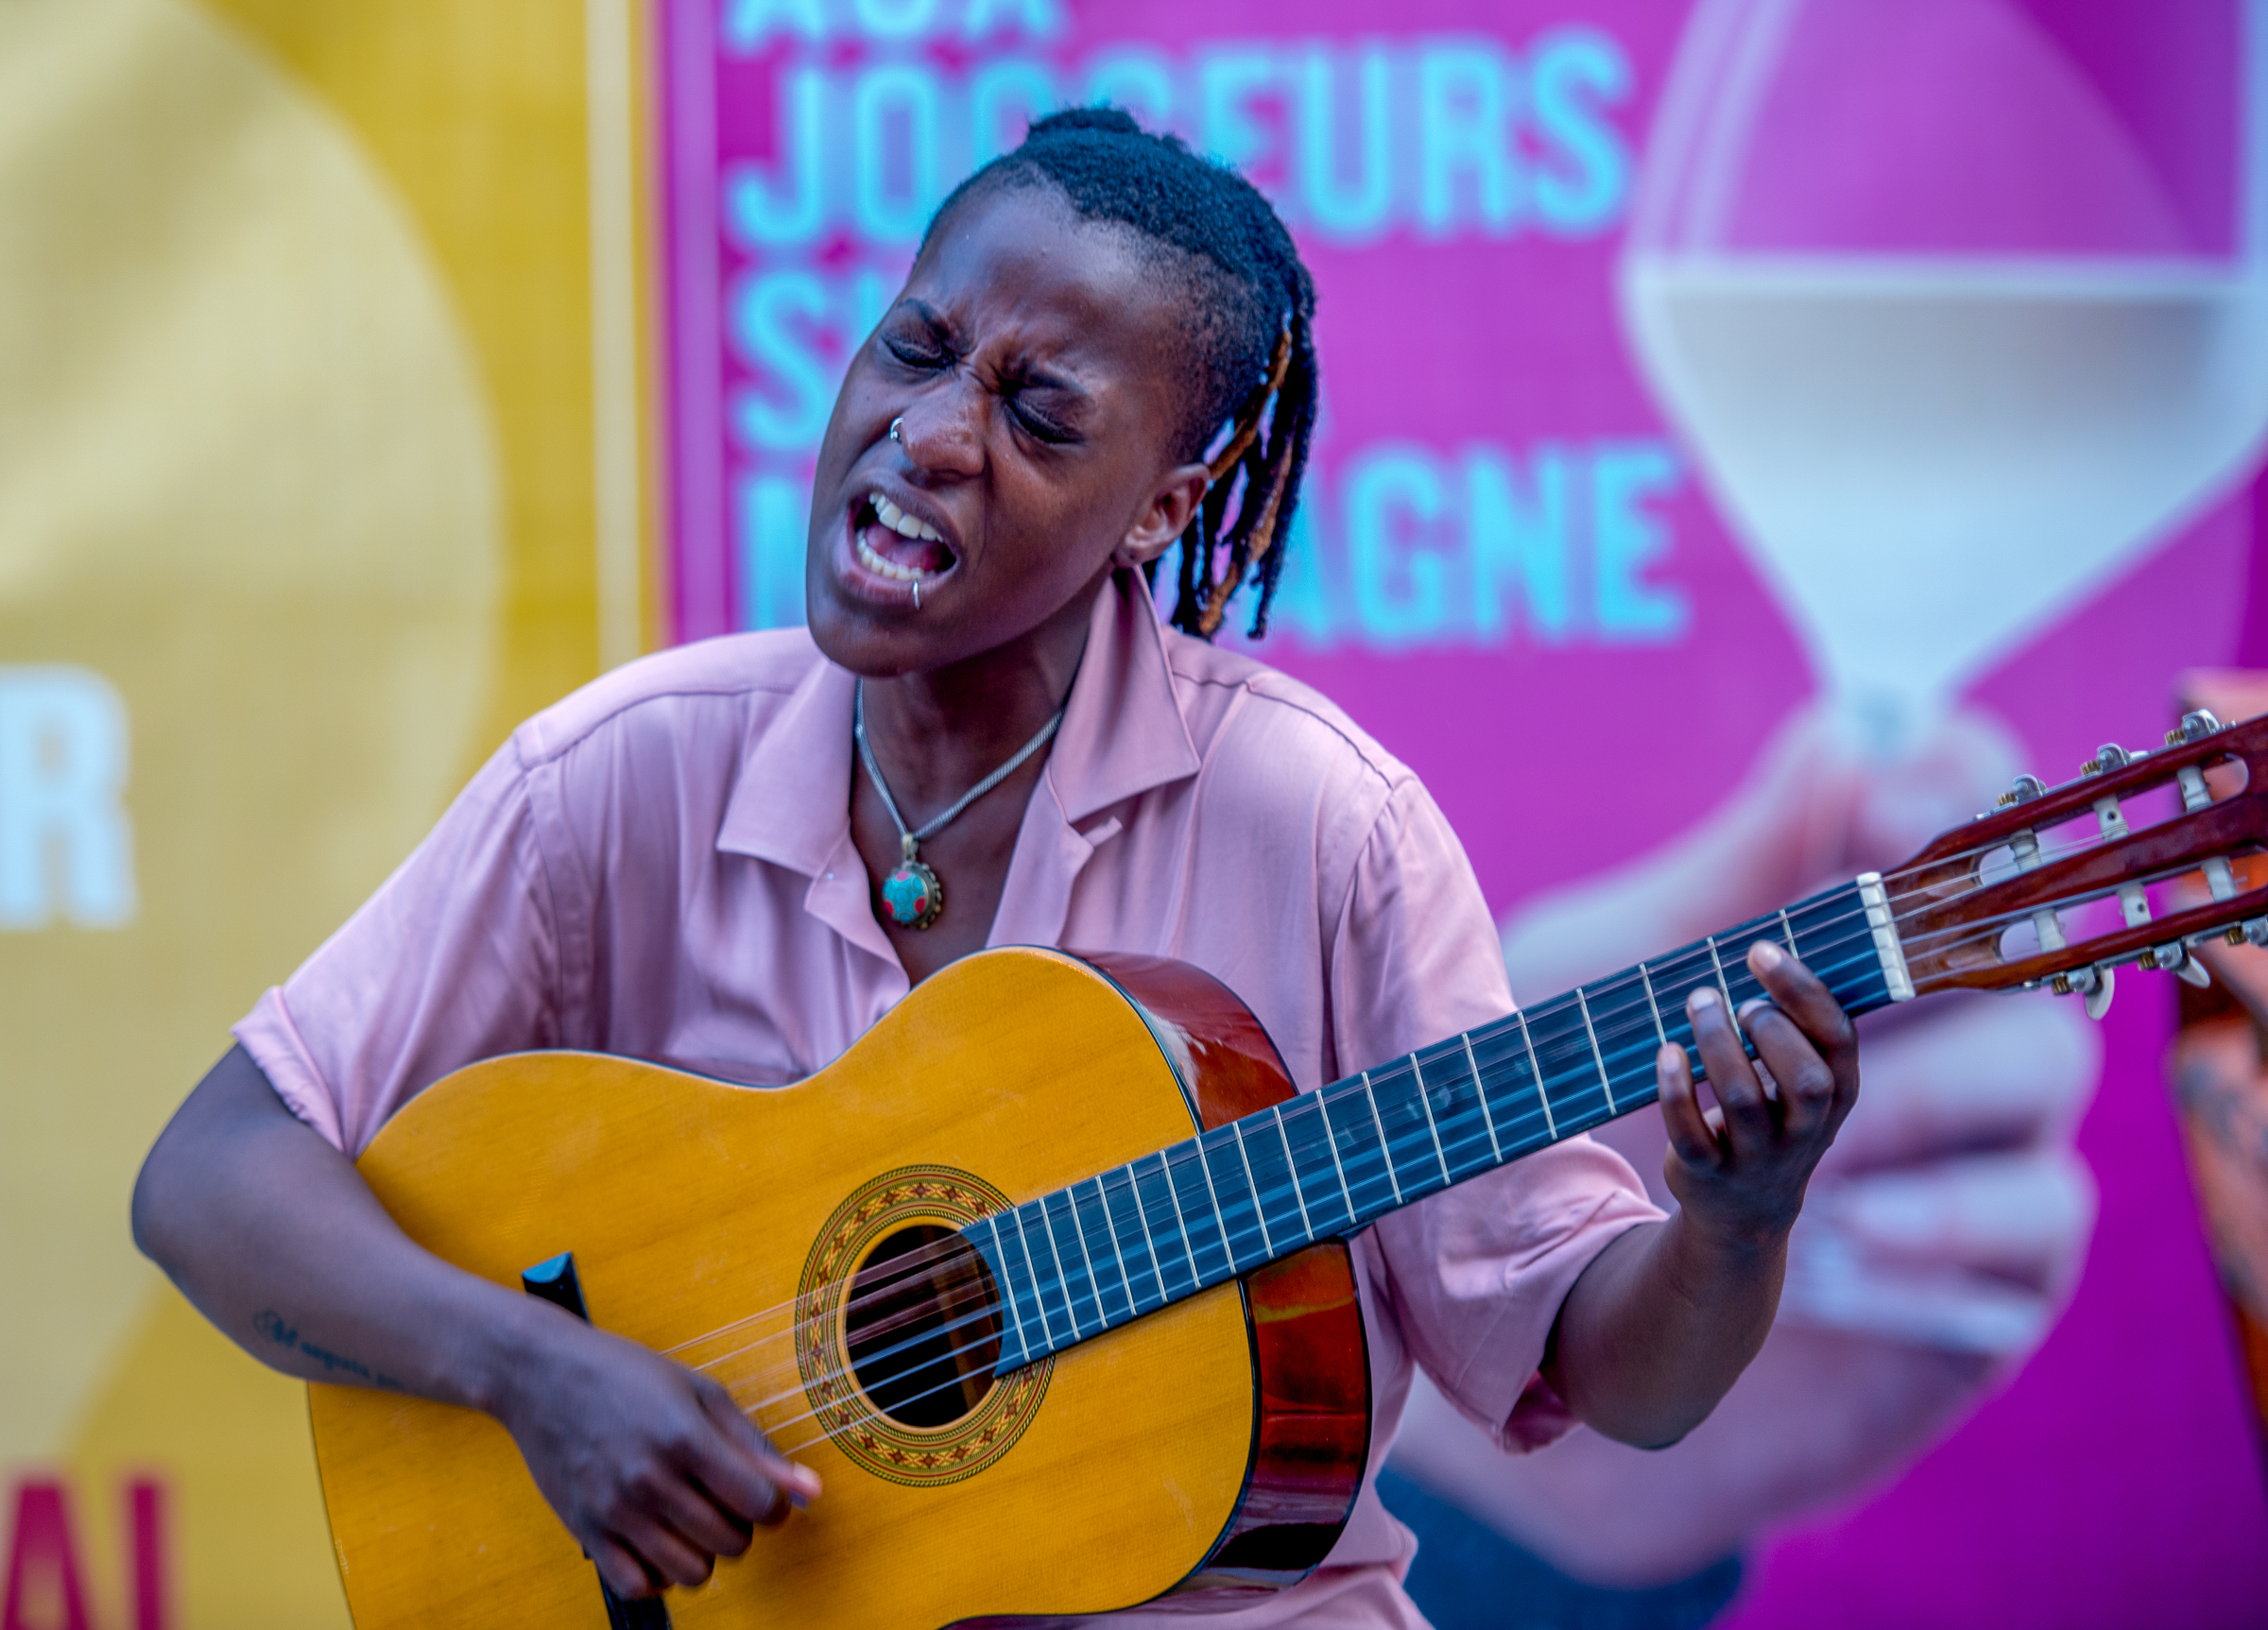 Street Musician At The Montreal International Jazz Festival 2018